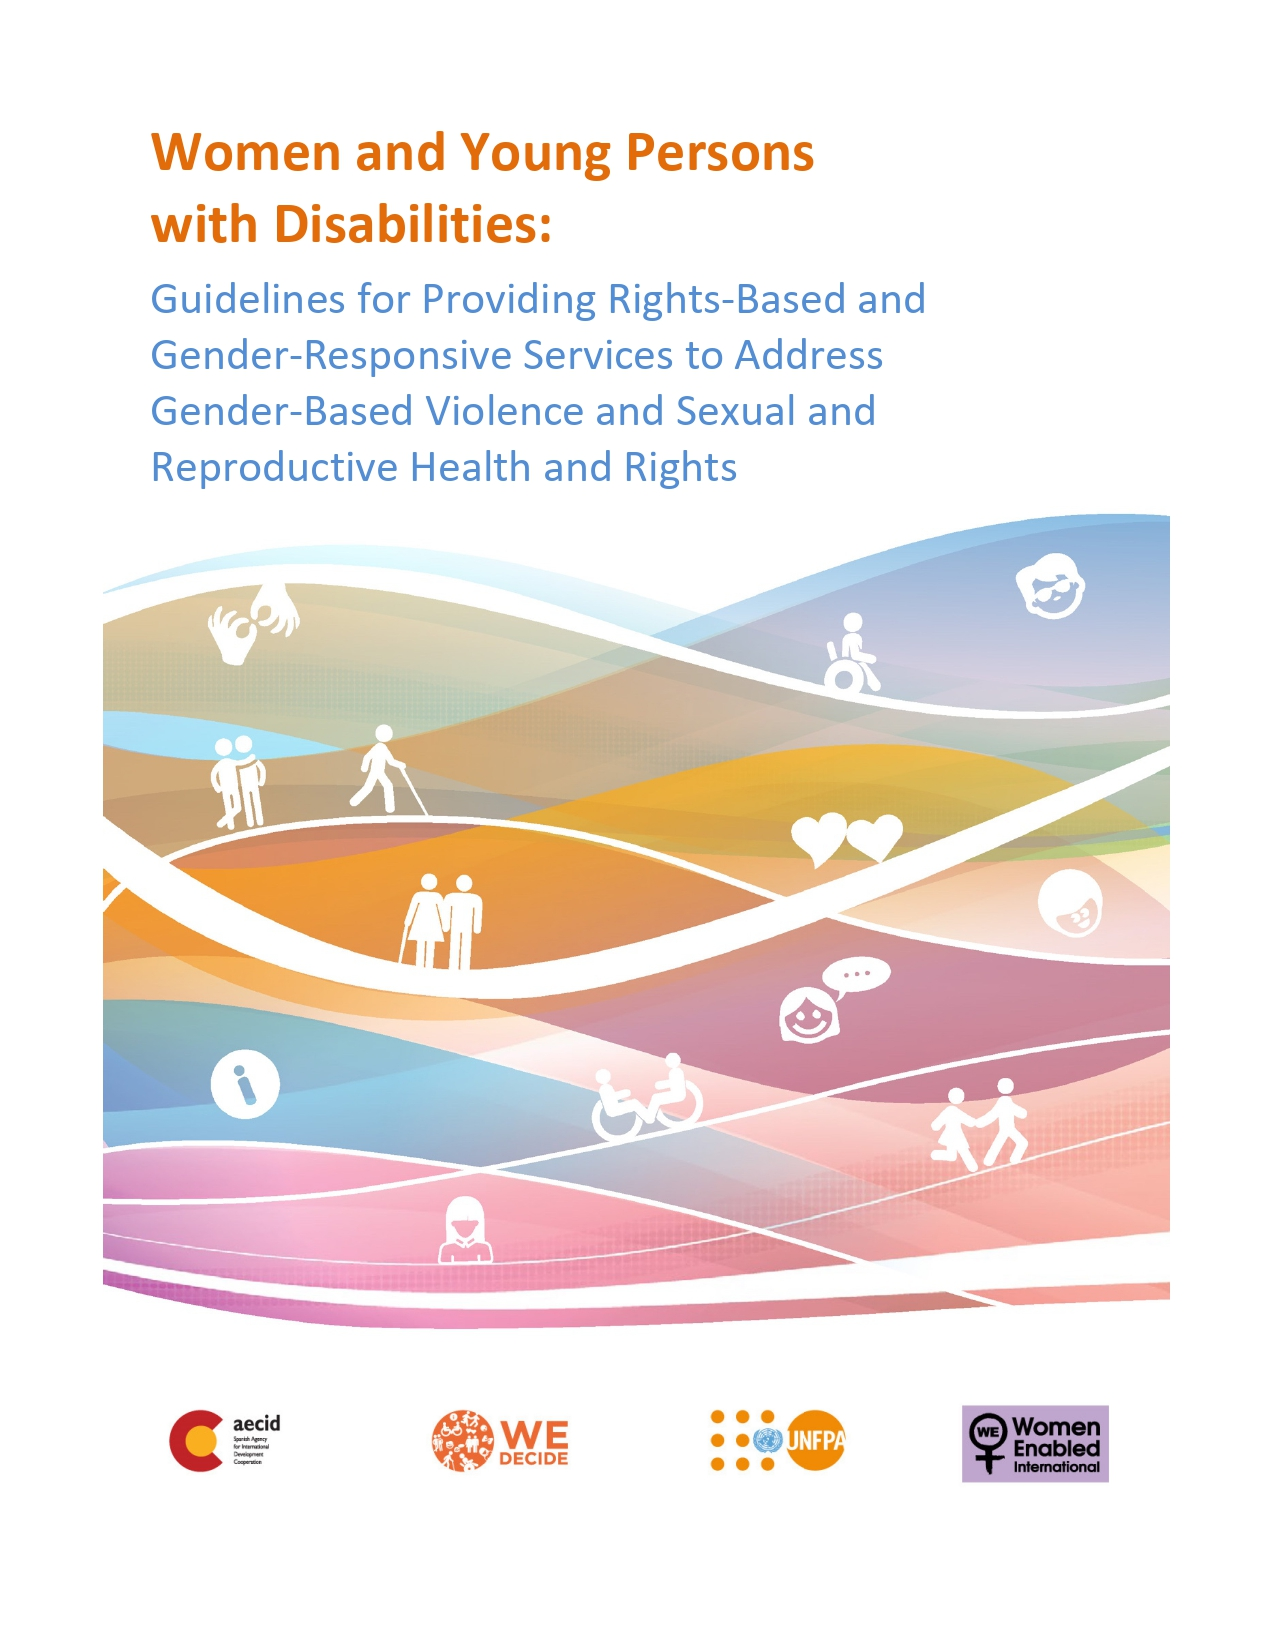 Women and Young Persons with Disabilities: Guidelines for Providing Rights-Based and Gender-Responsive Services to Address Gender-Based Violence and Sexual and Reproductive Health and Rights